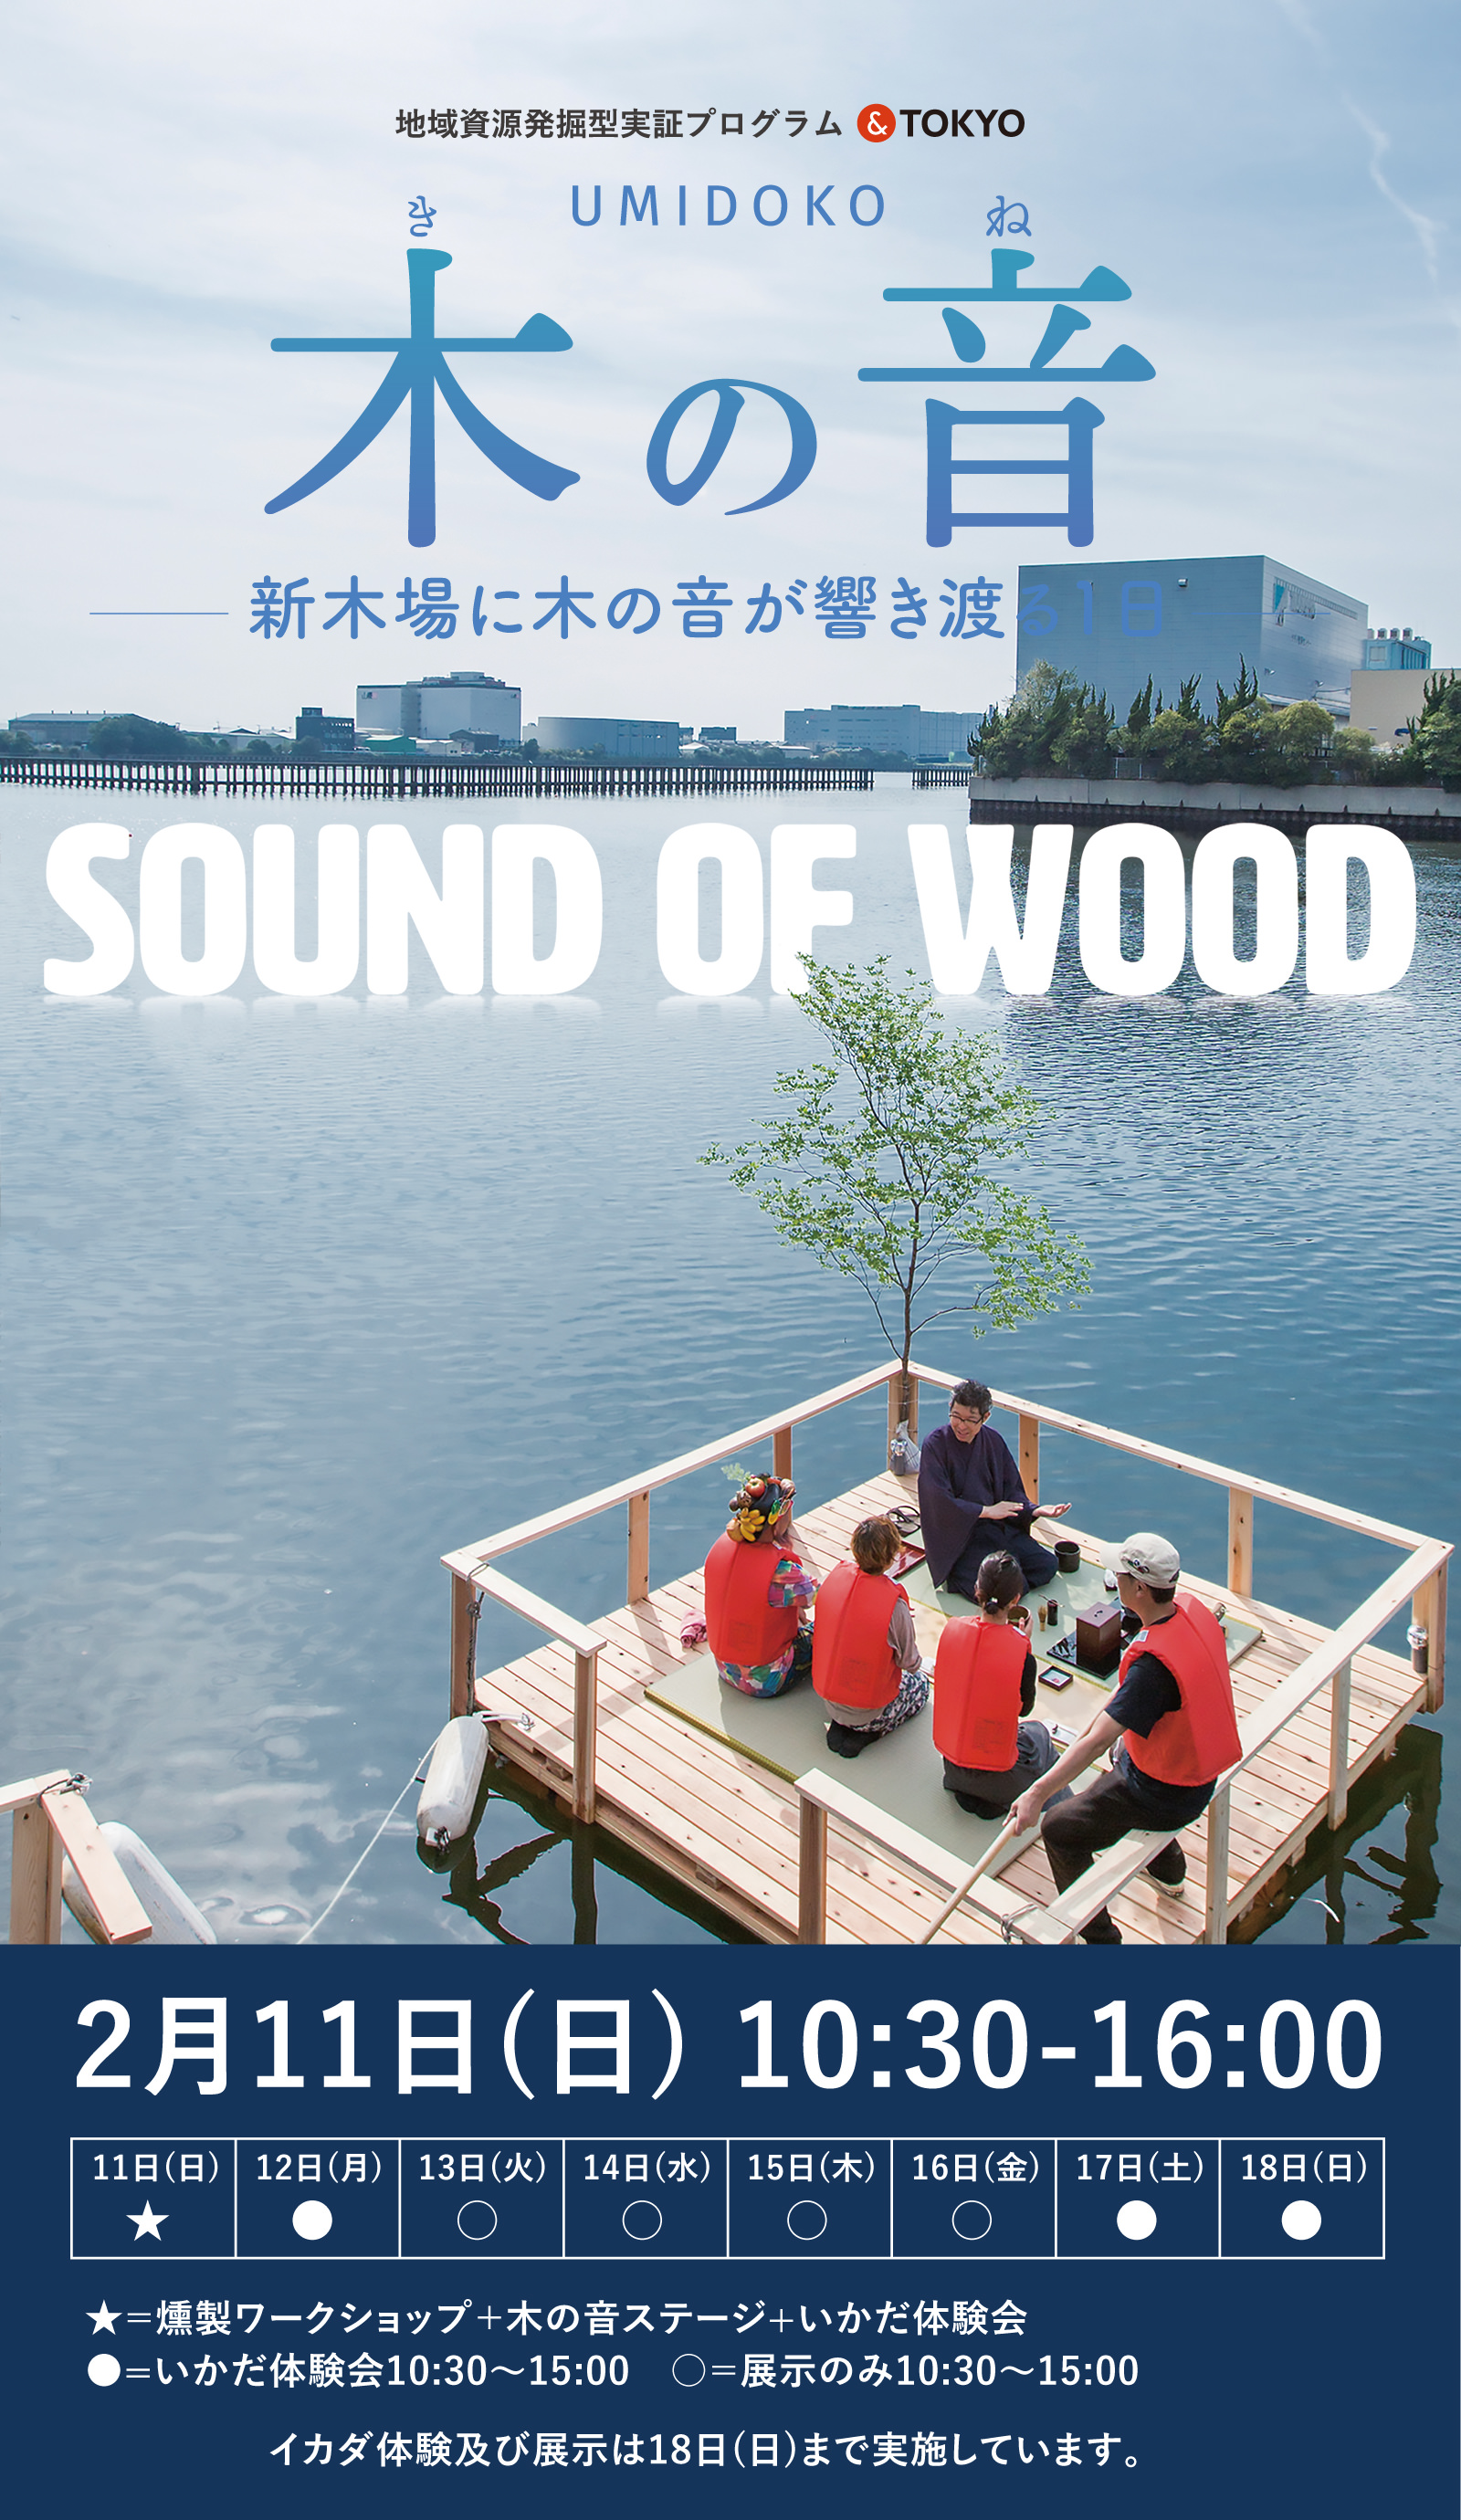 UMIDOKO 木の音 -SOUND OF WOOD 2018-